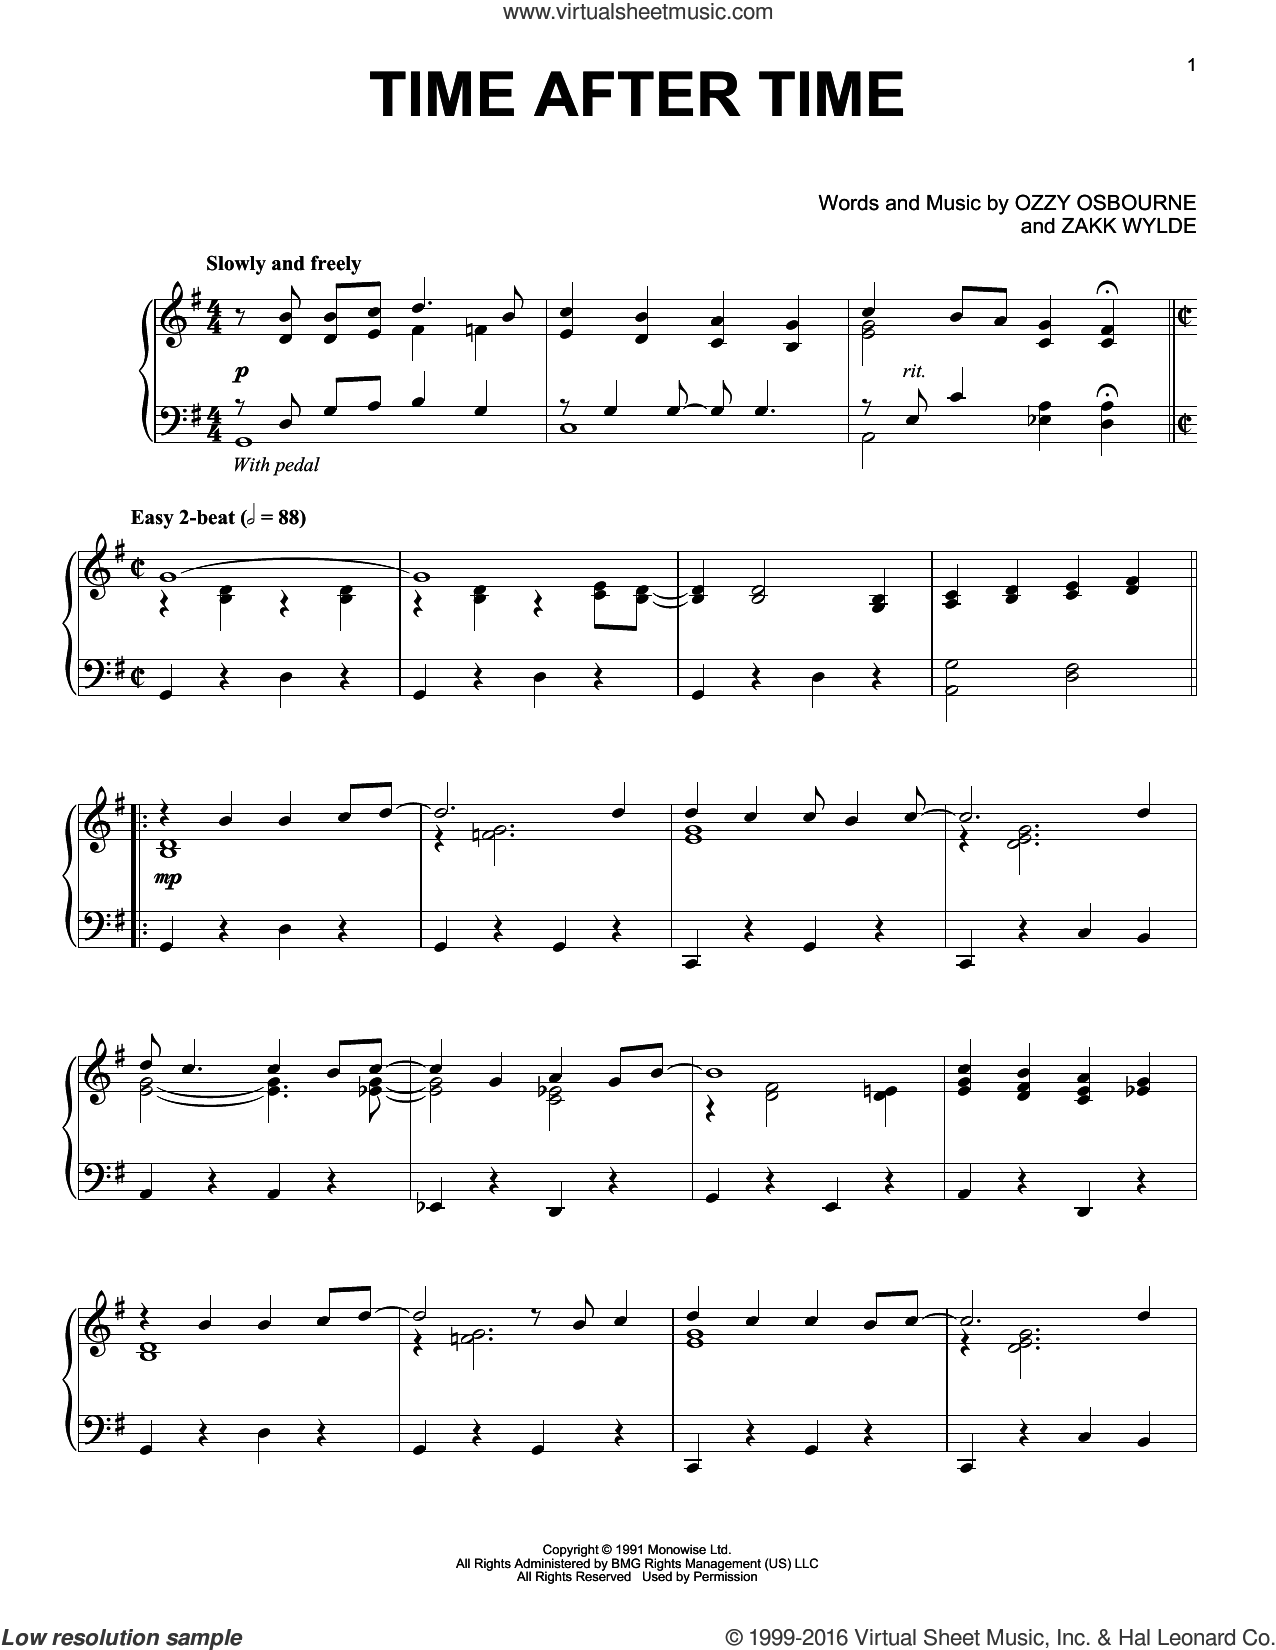 Time After Time [Jazz version] sheet music for piano solo by Ozzy Osbourne and Zakk Wylde, intermediate skill level